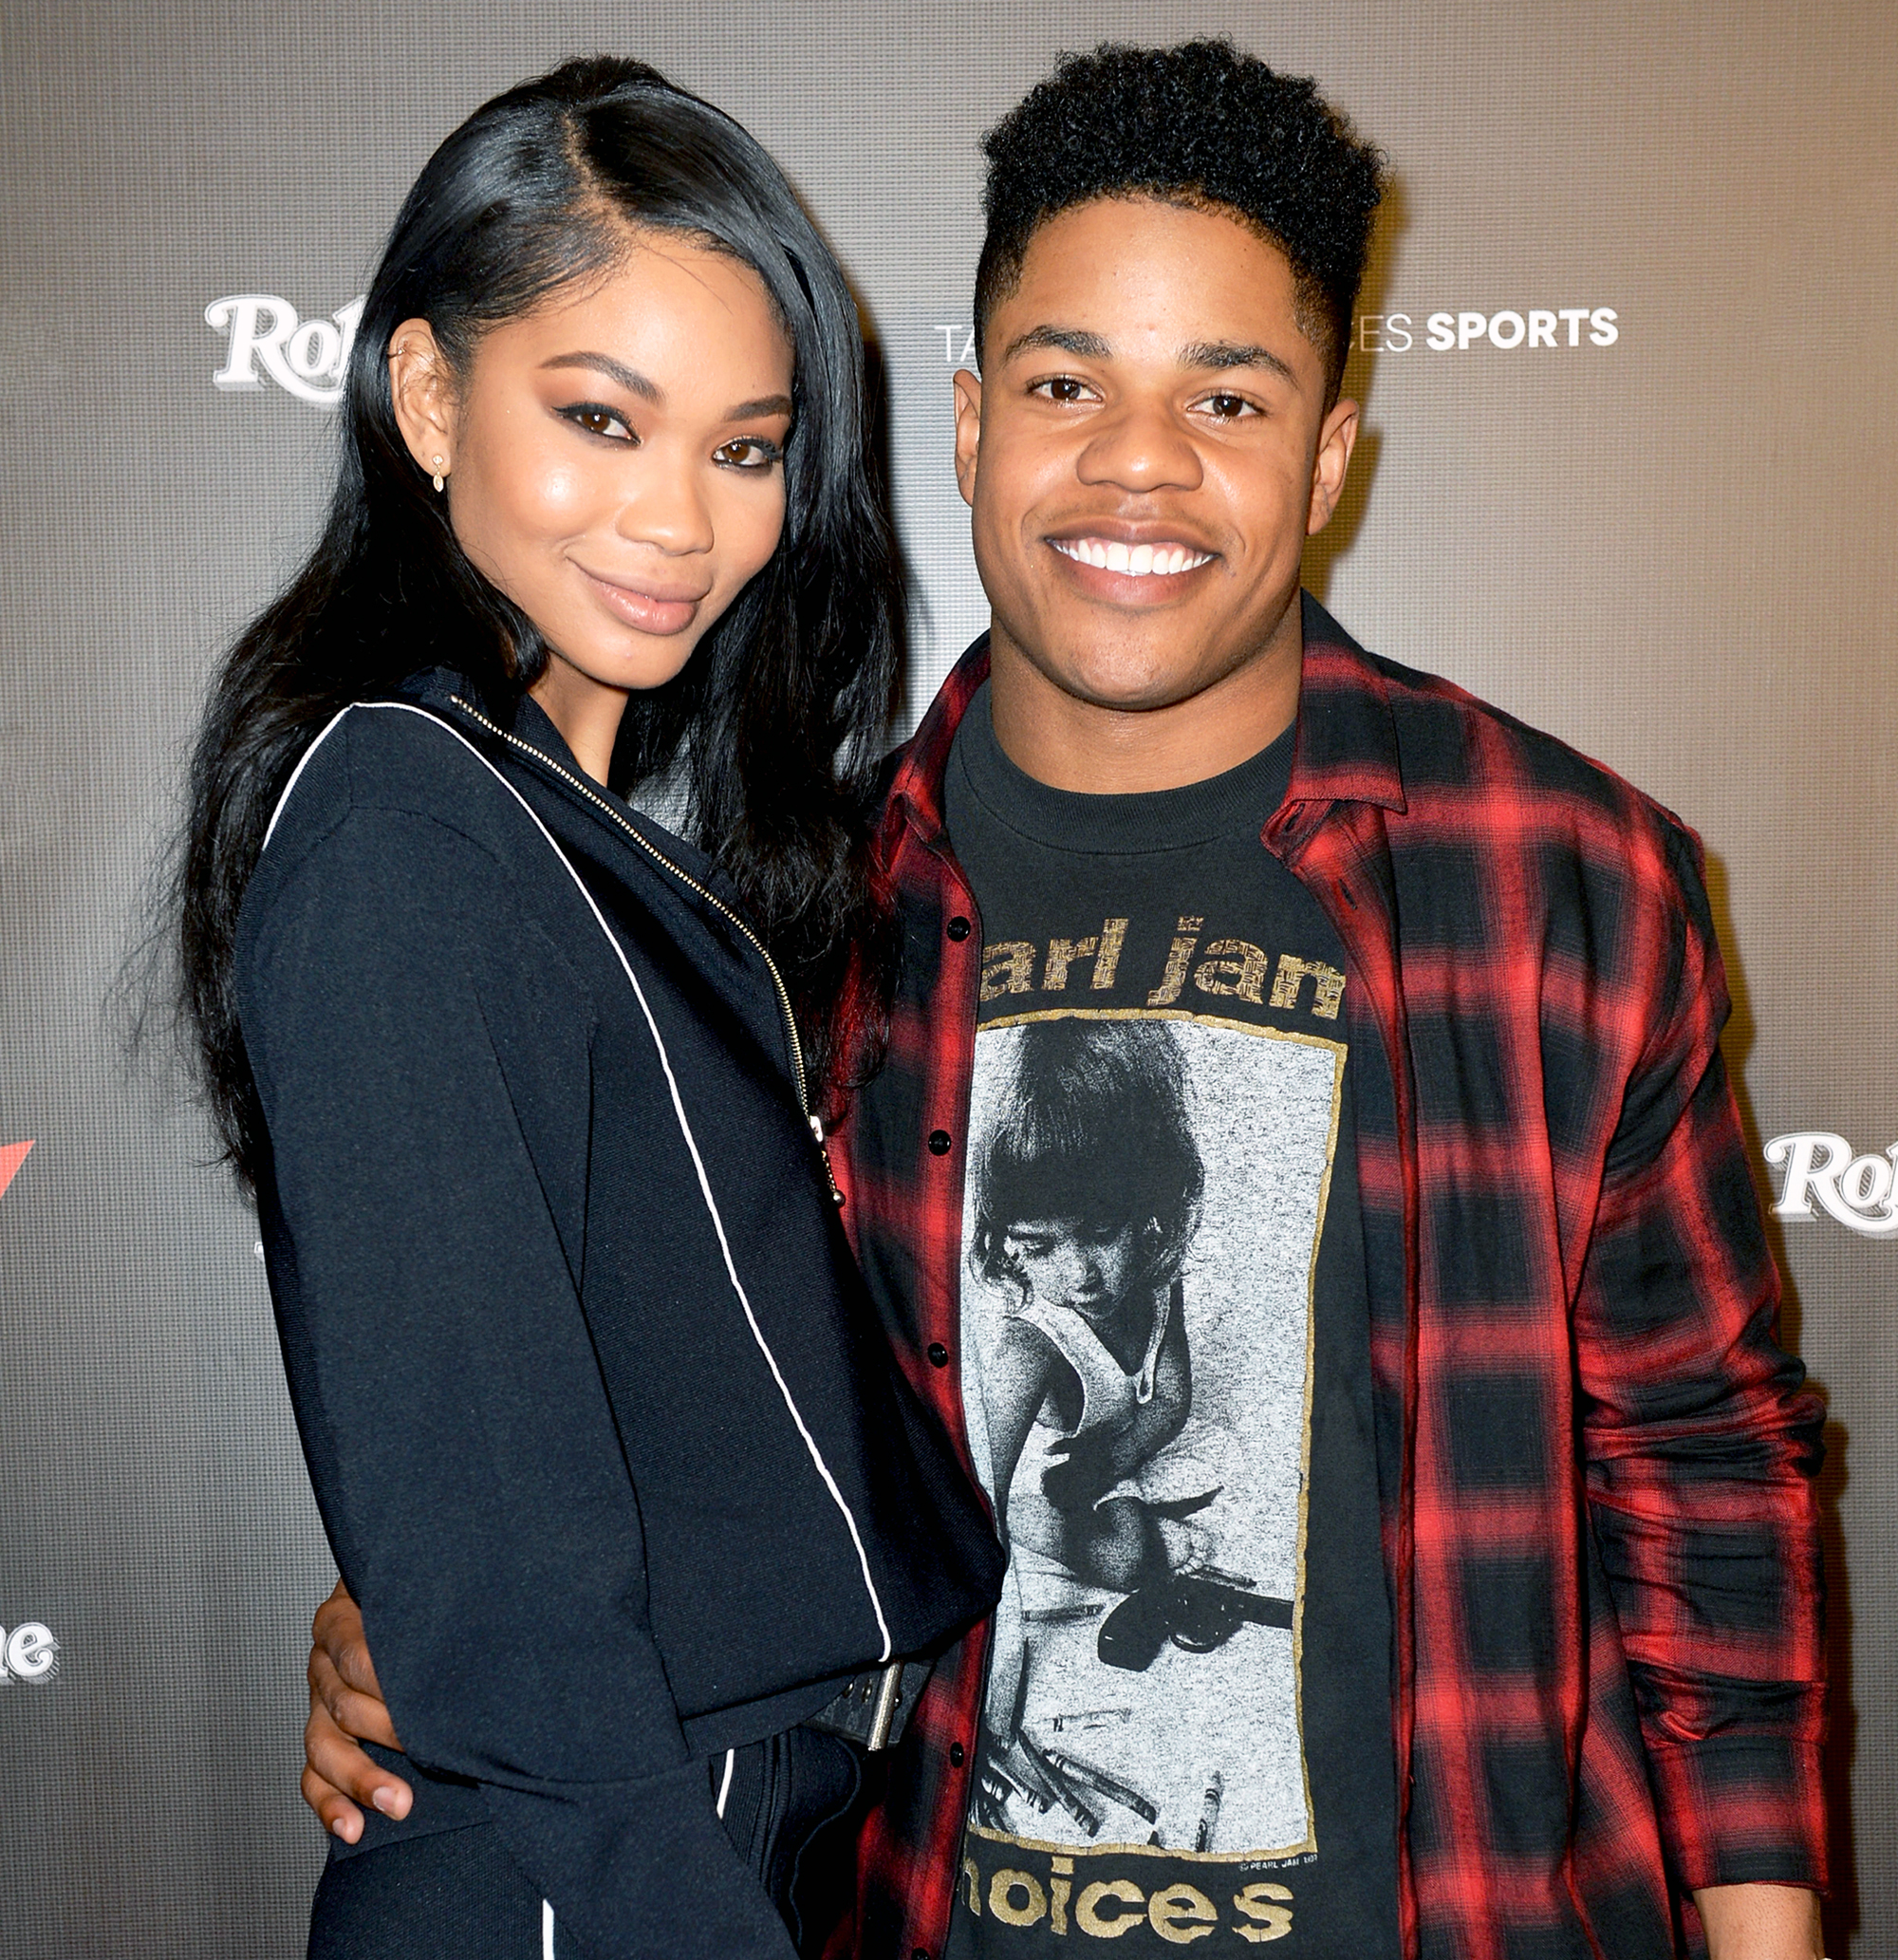 Chanel Iman is expecting her first child